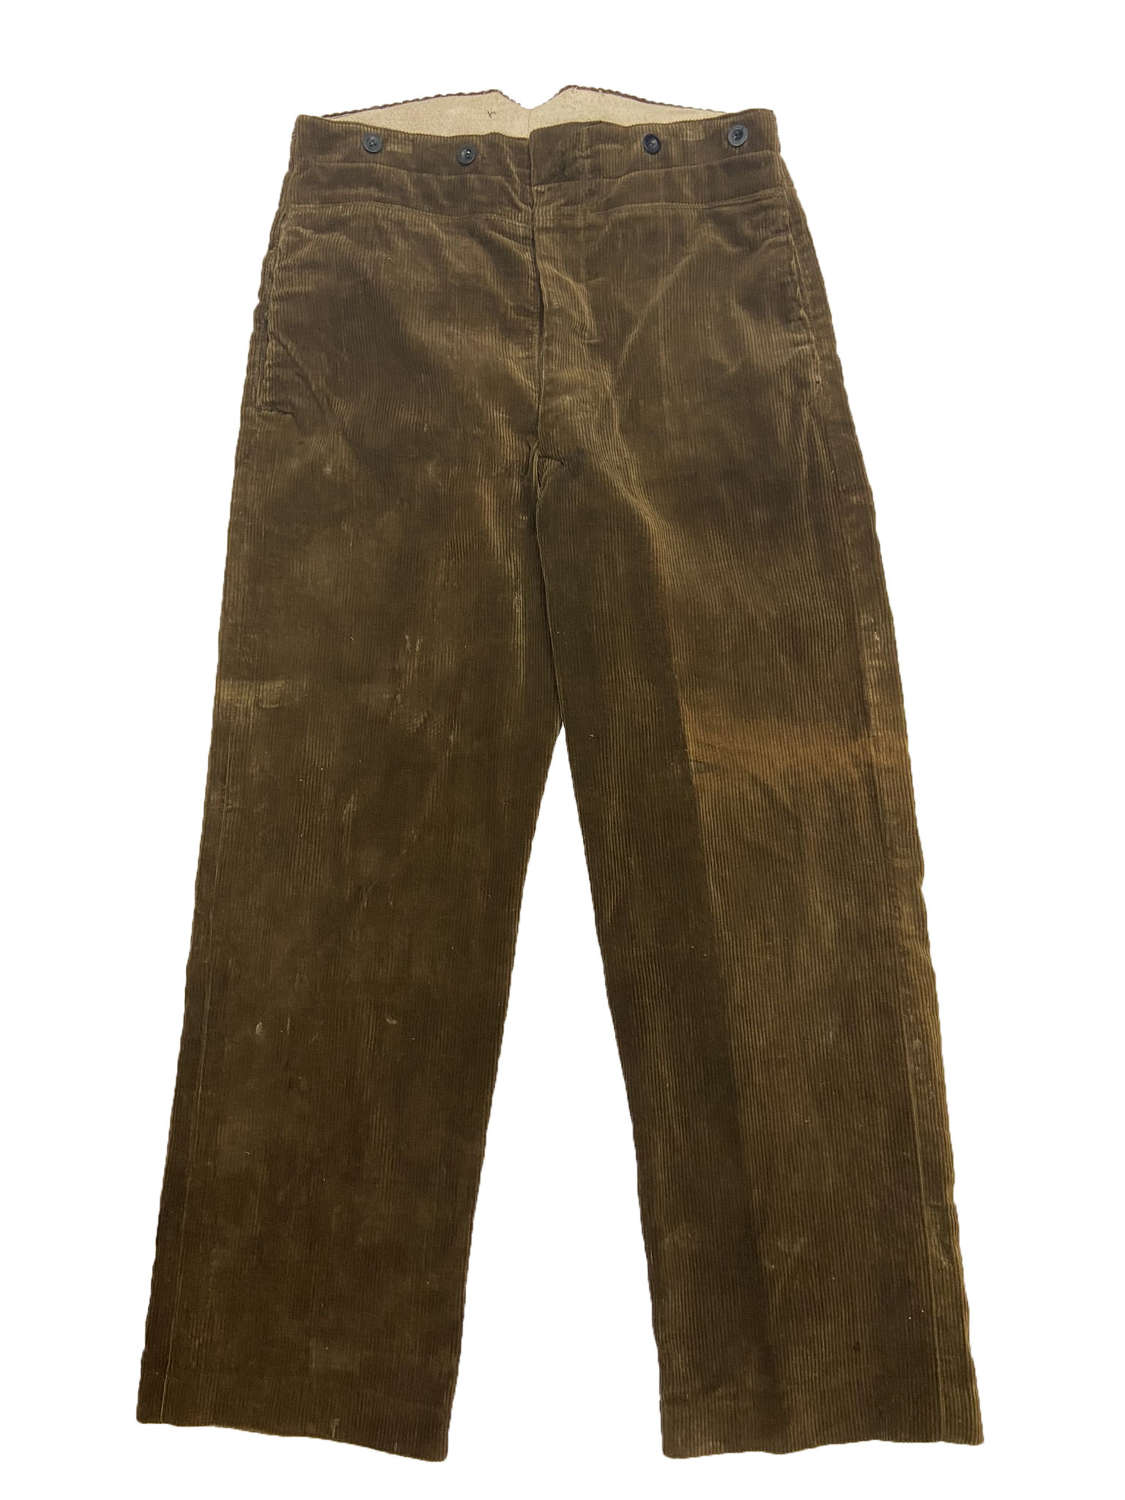 Rare Original 1940s CC41 Men's Brown Corduroy Trousers